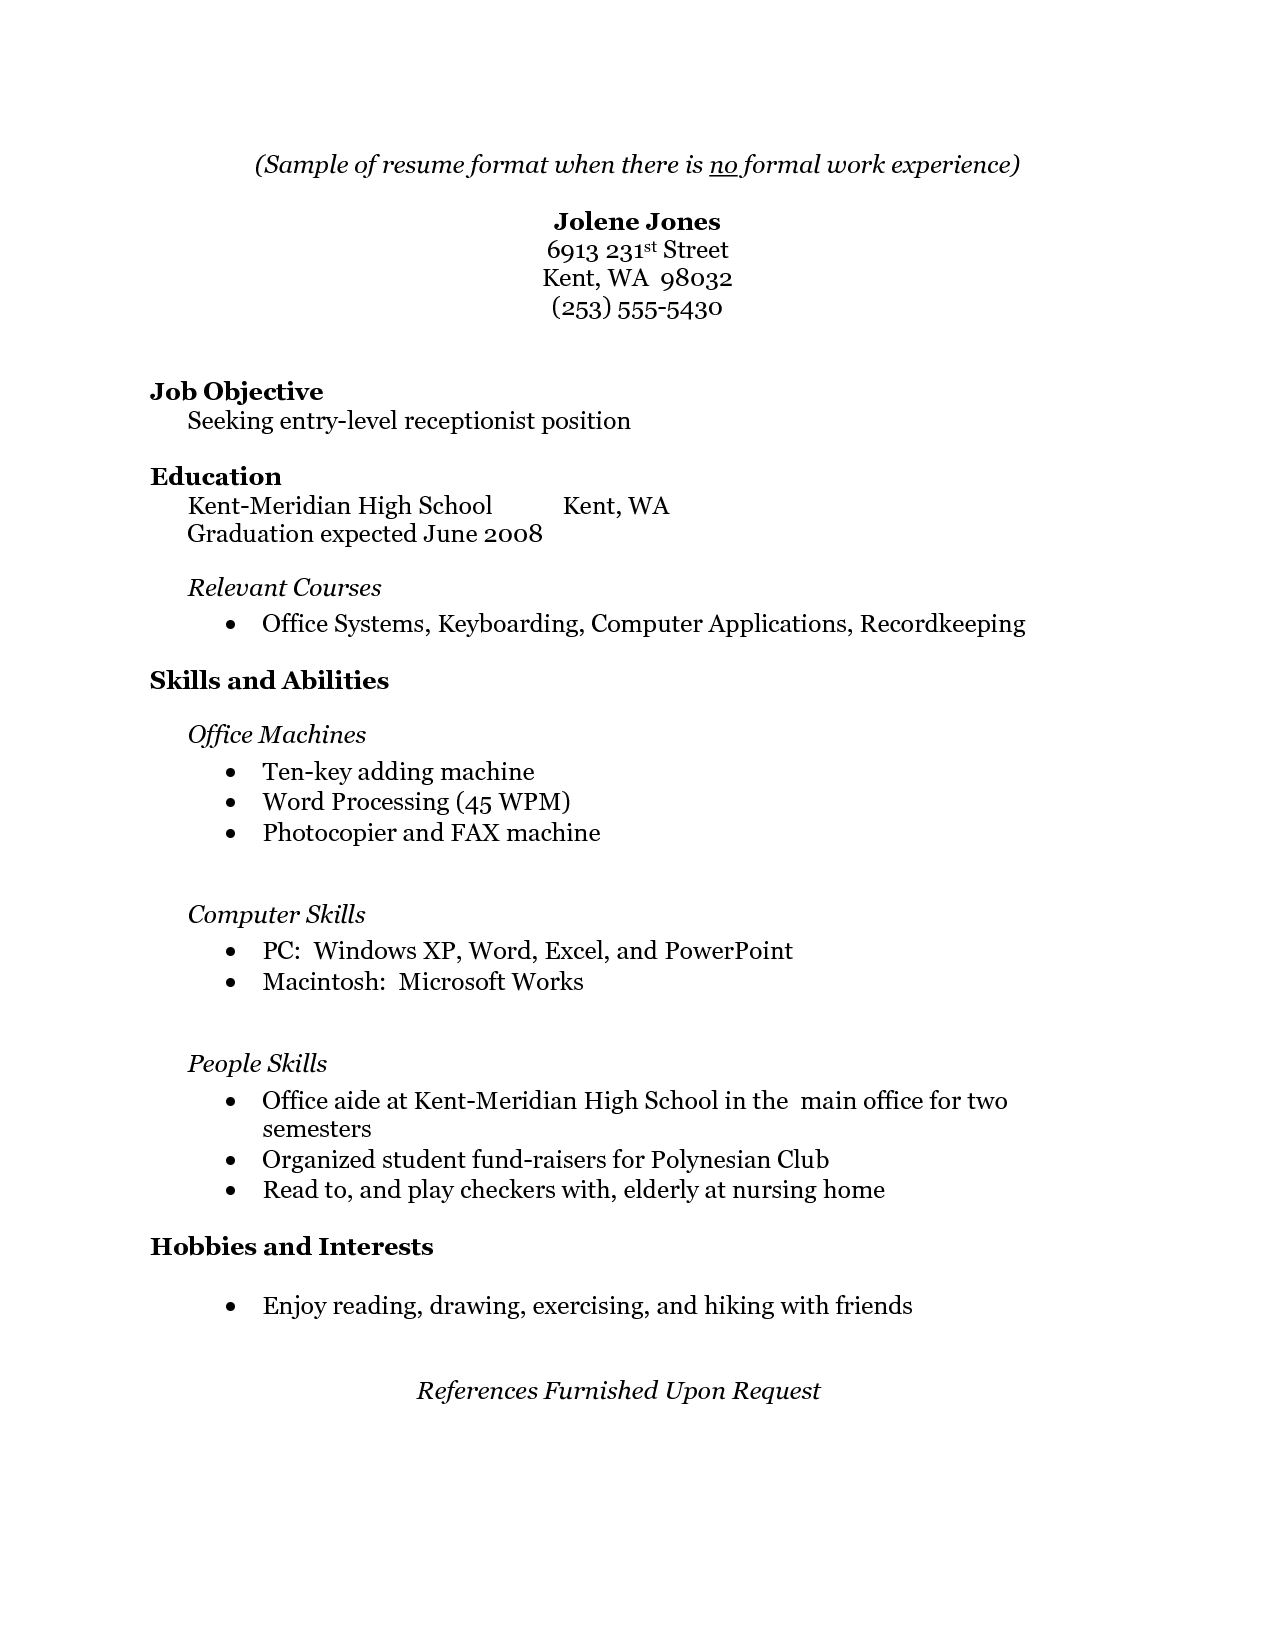 resume for job with no experience